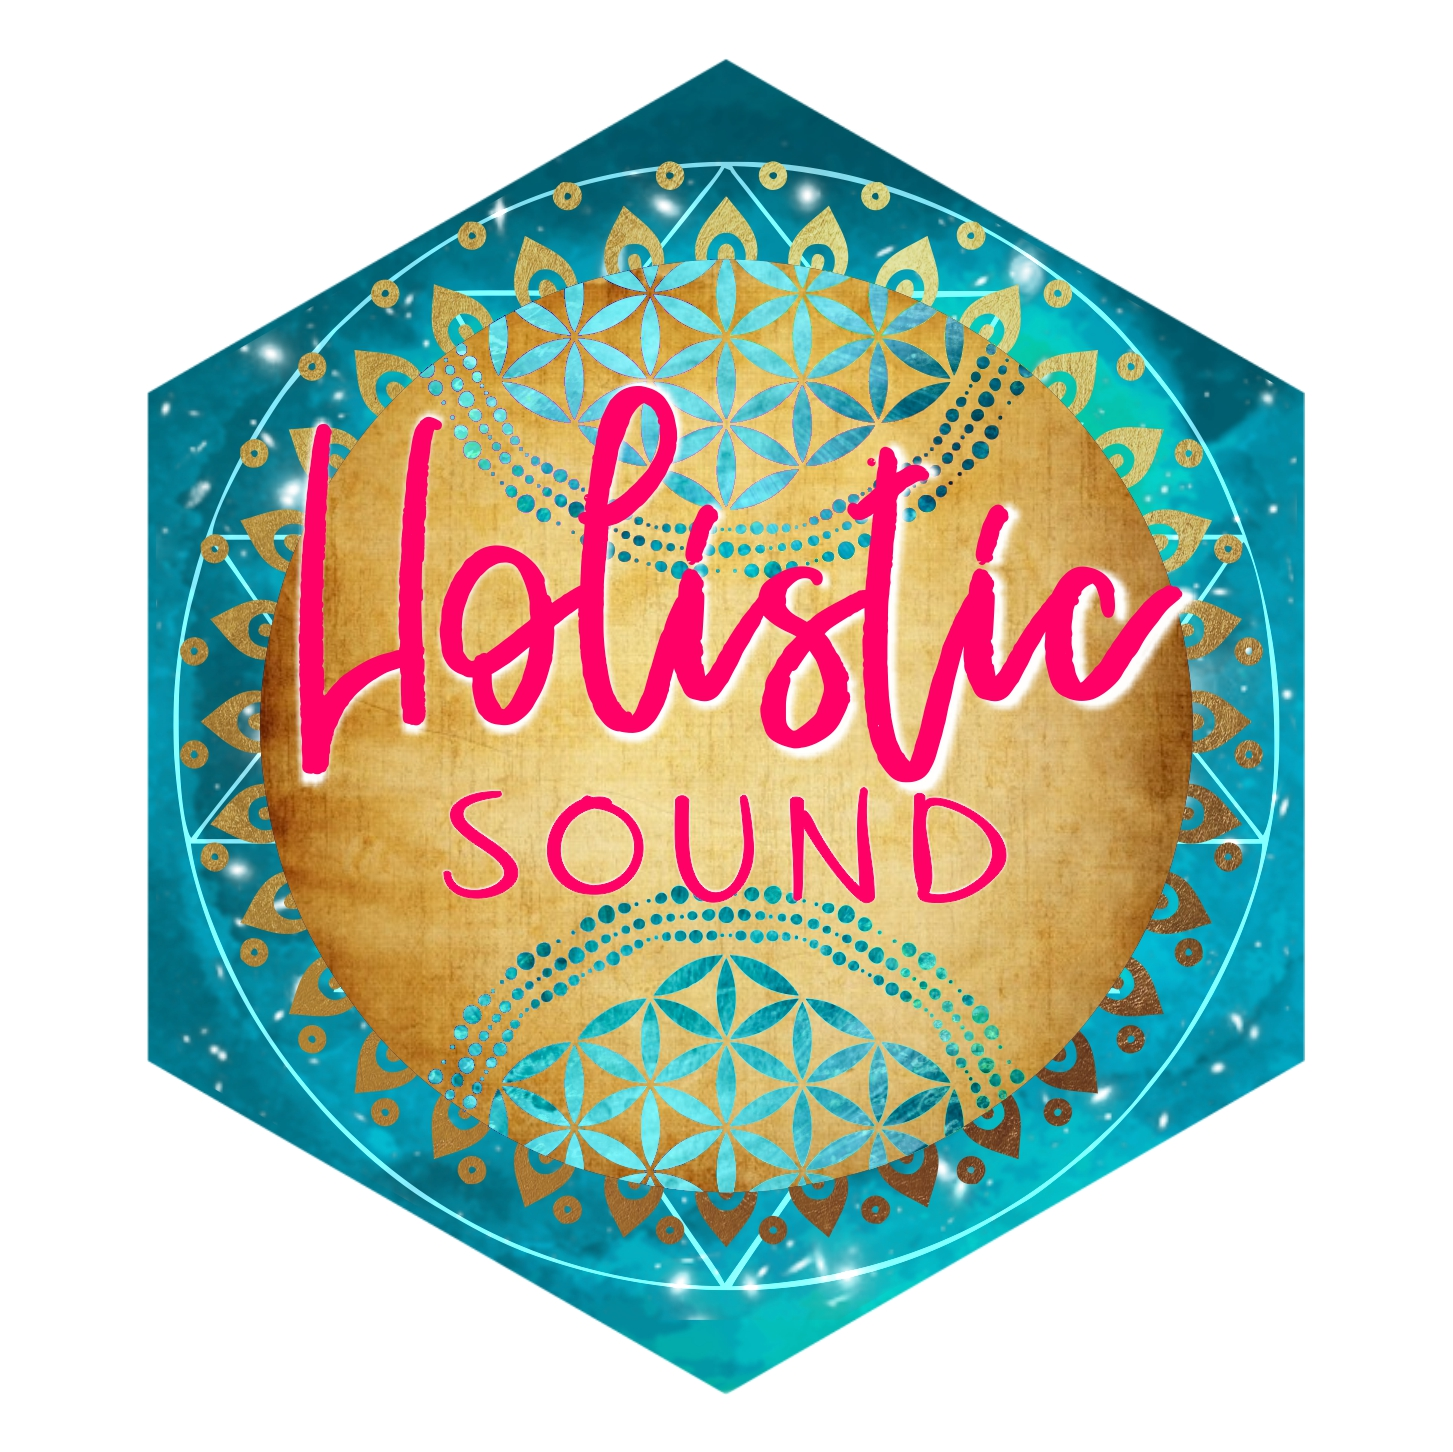 Holistic Sound